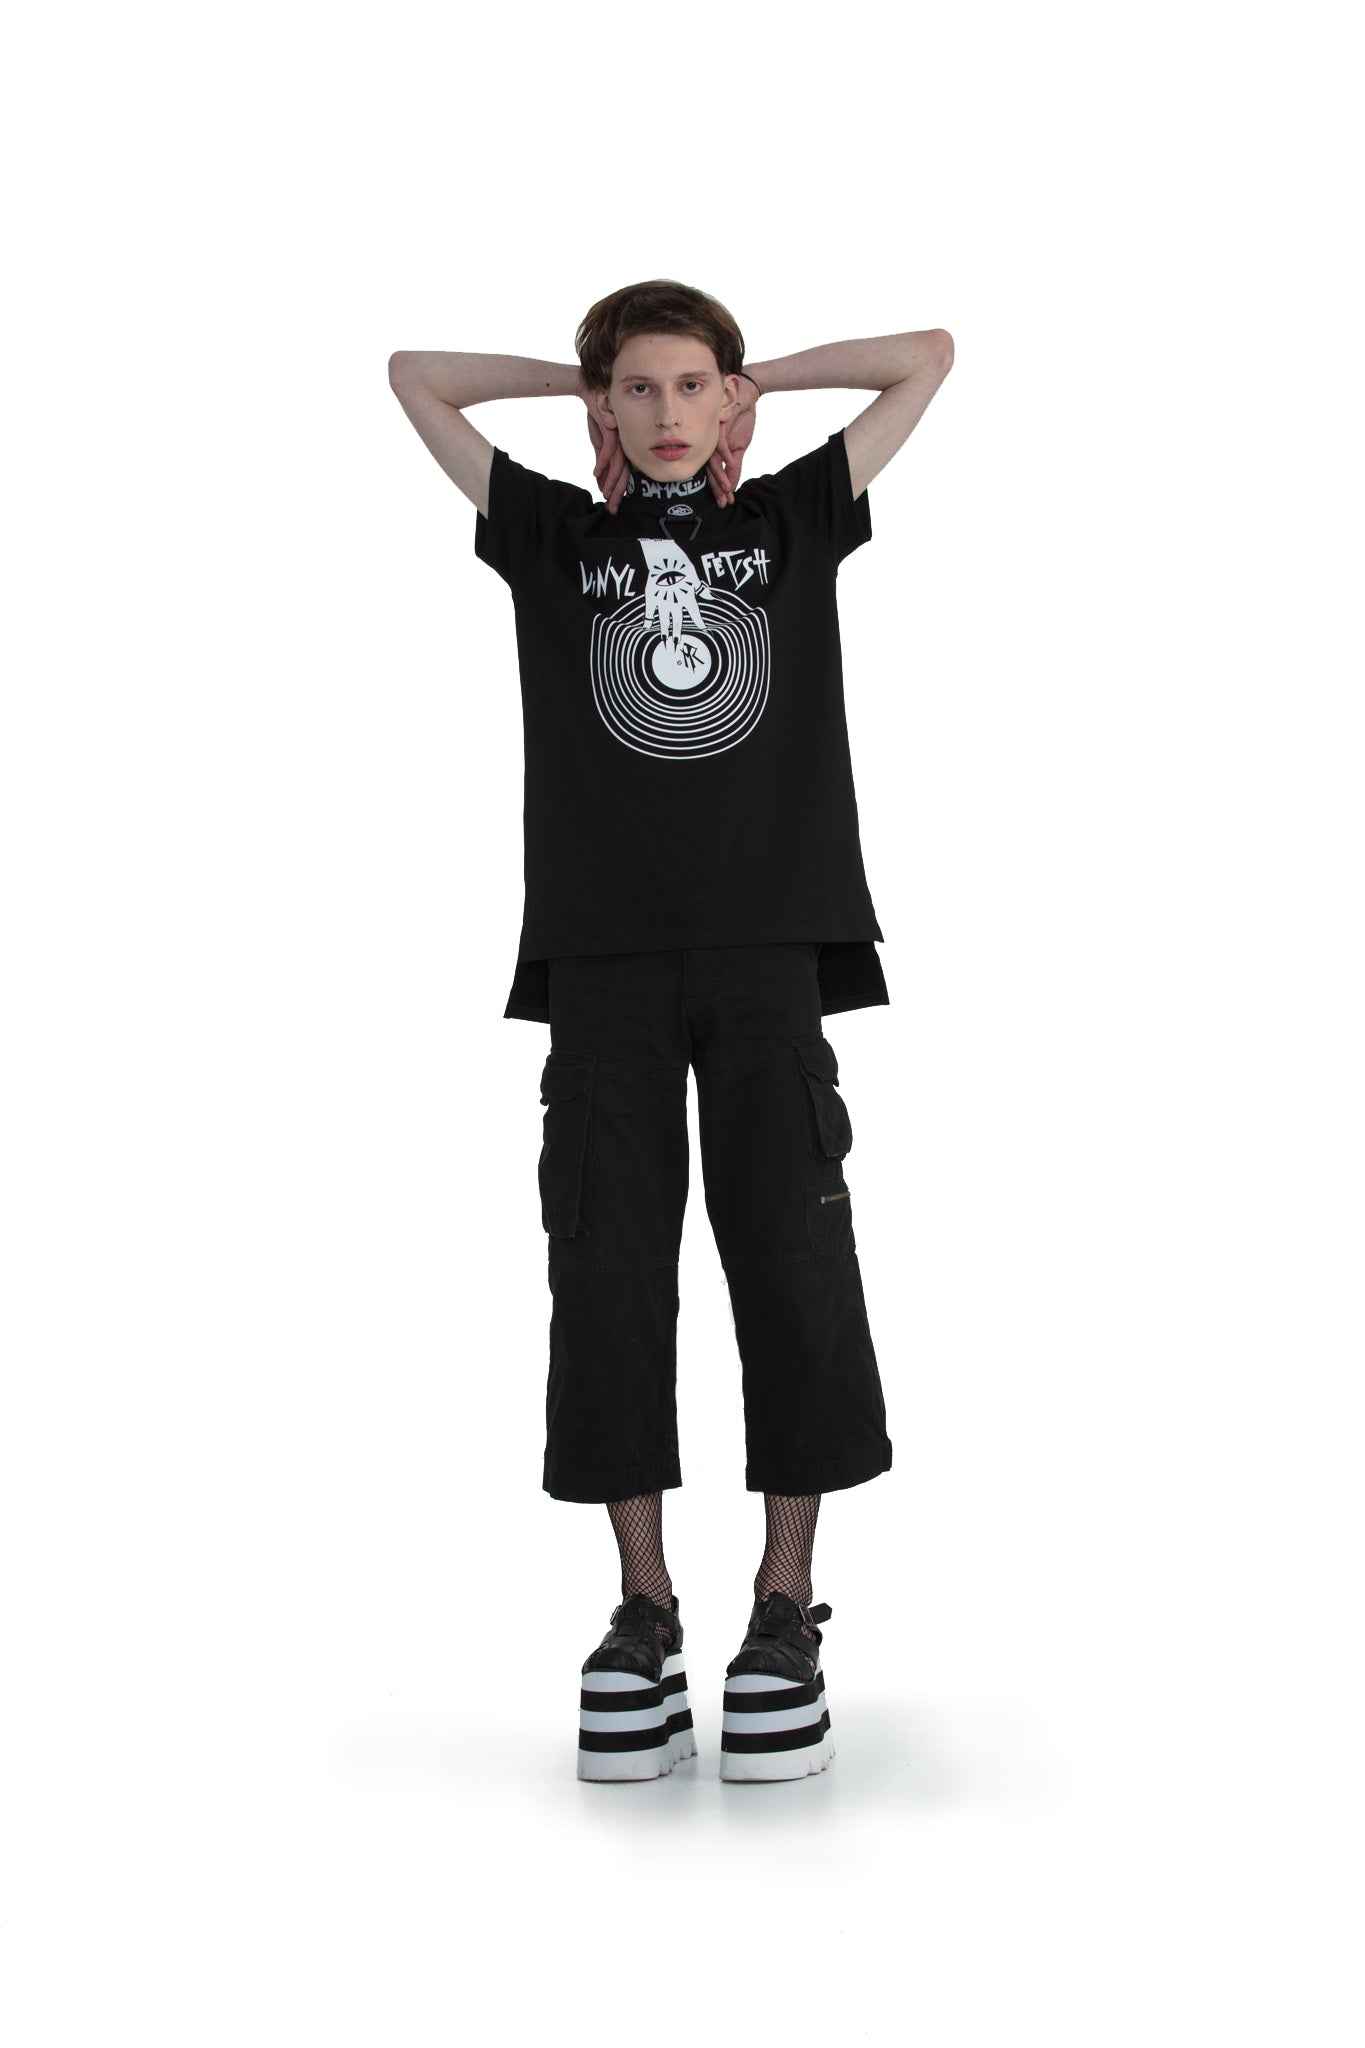 Vinyl Fetish - regular fit T-shirt with side cuts